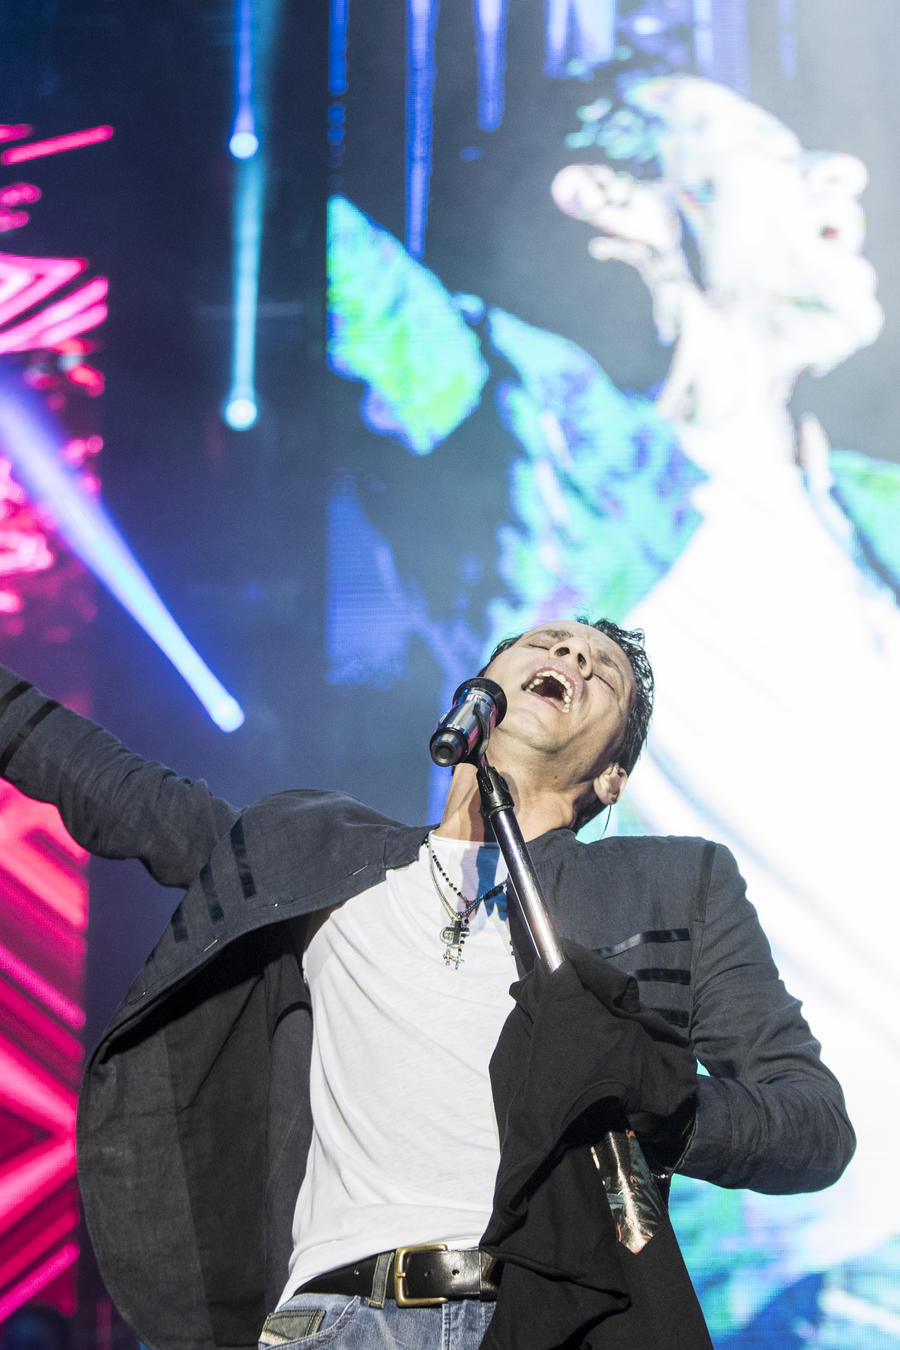 Marc Anthony Performs in Concert in Barcelona